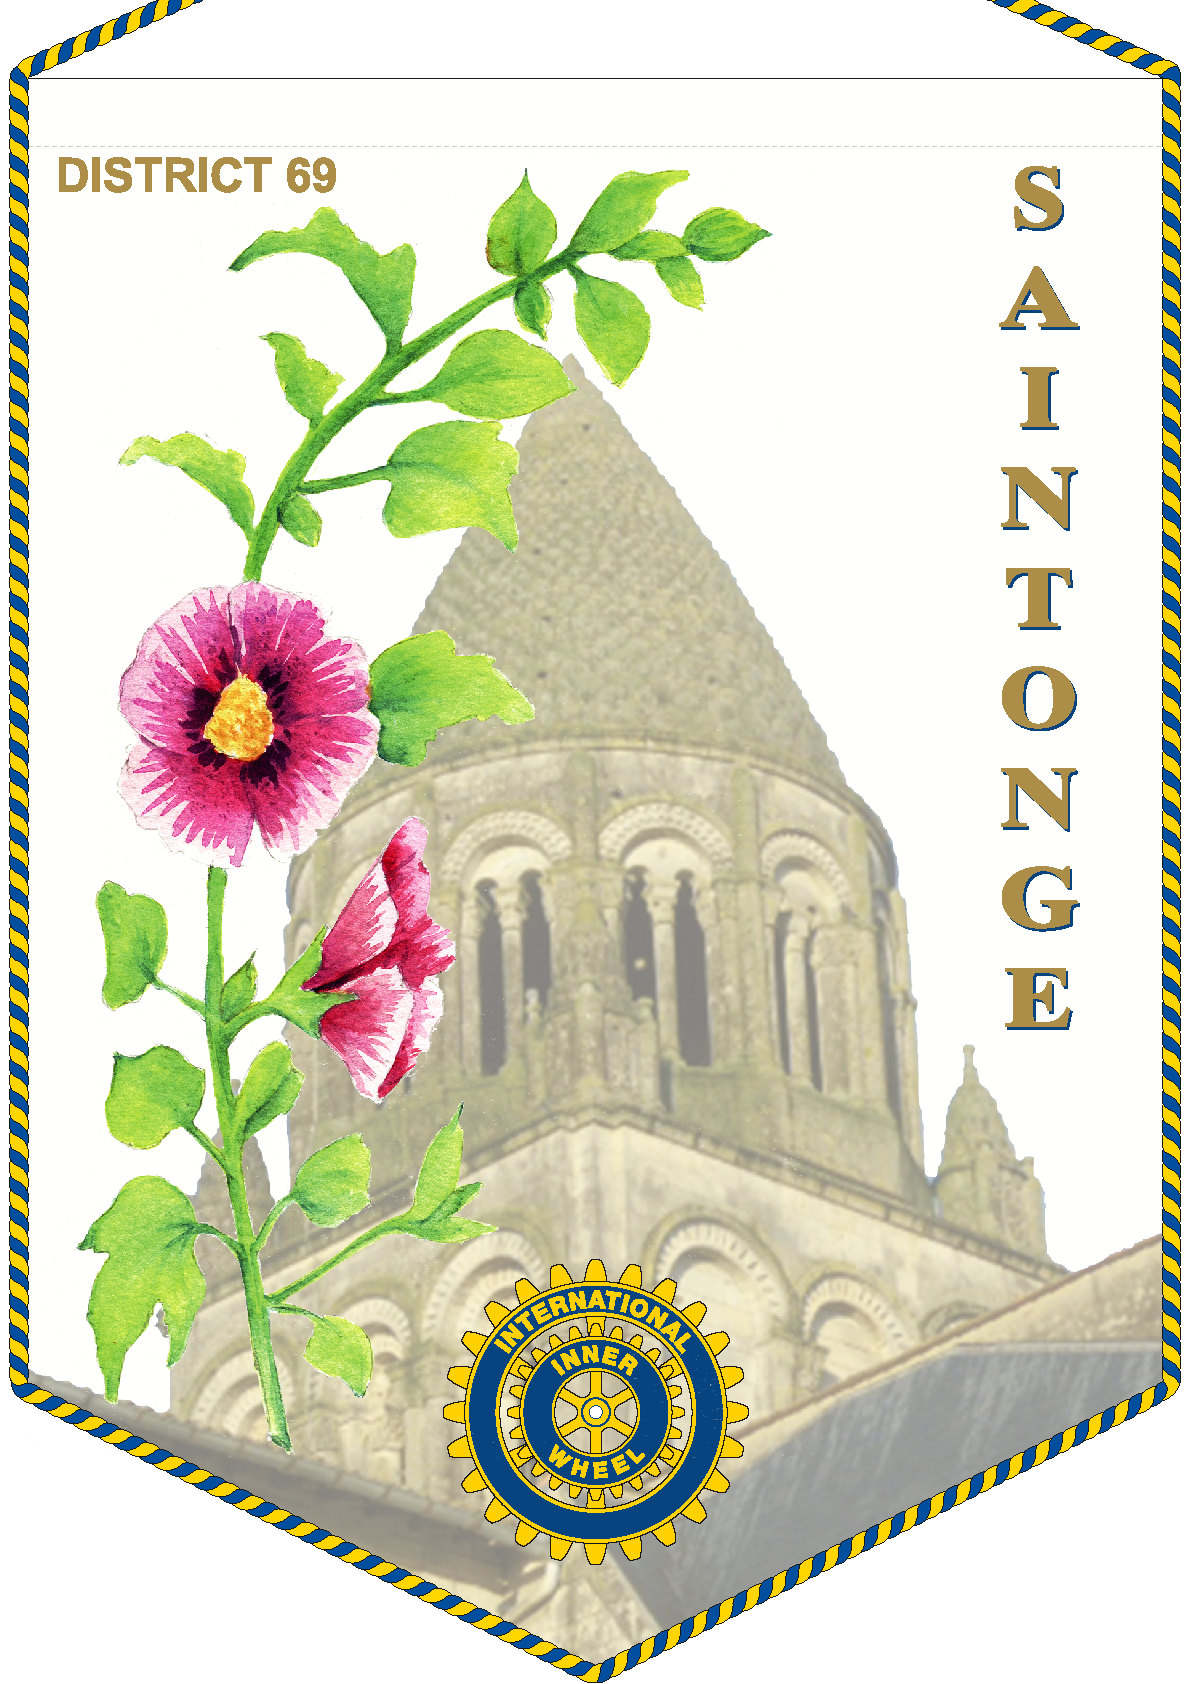 FANION INNER WHEEL CLUB SAINTONGE